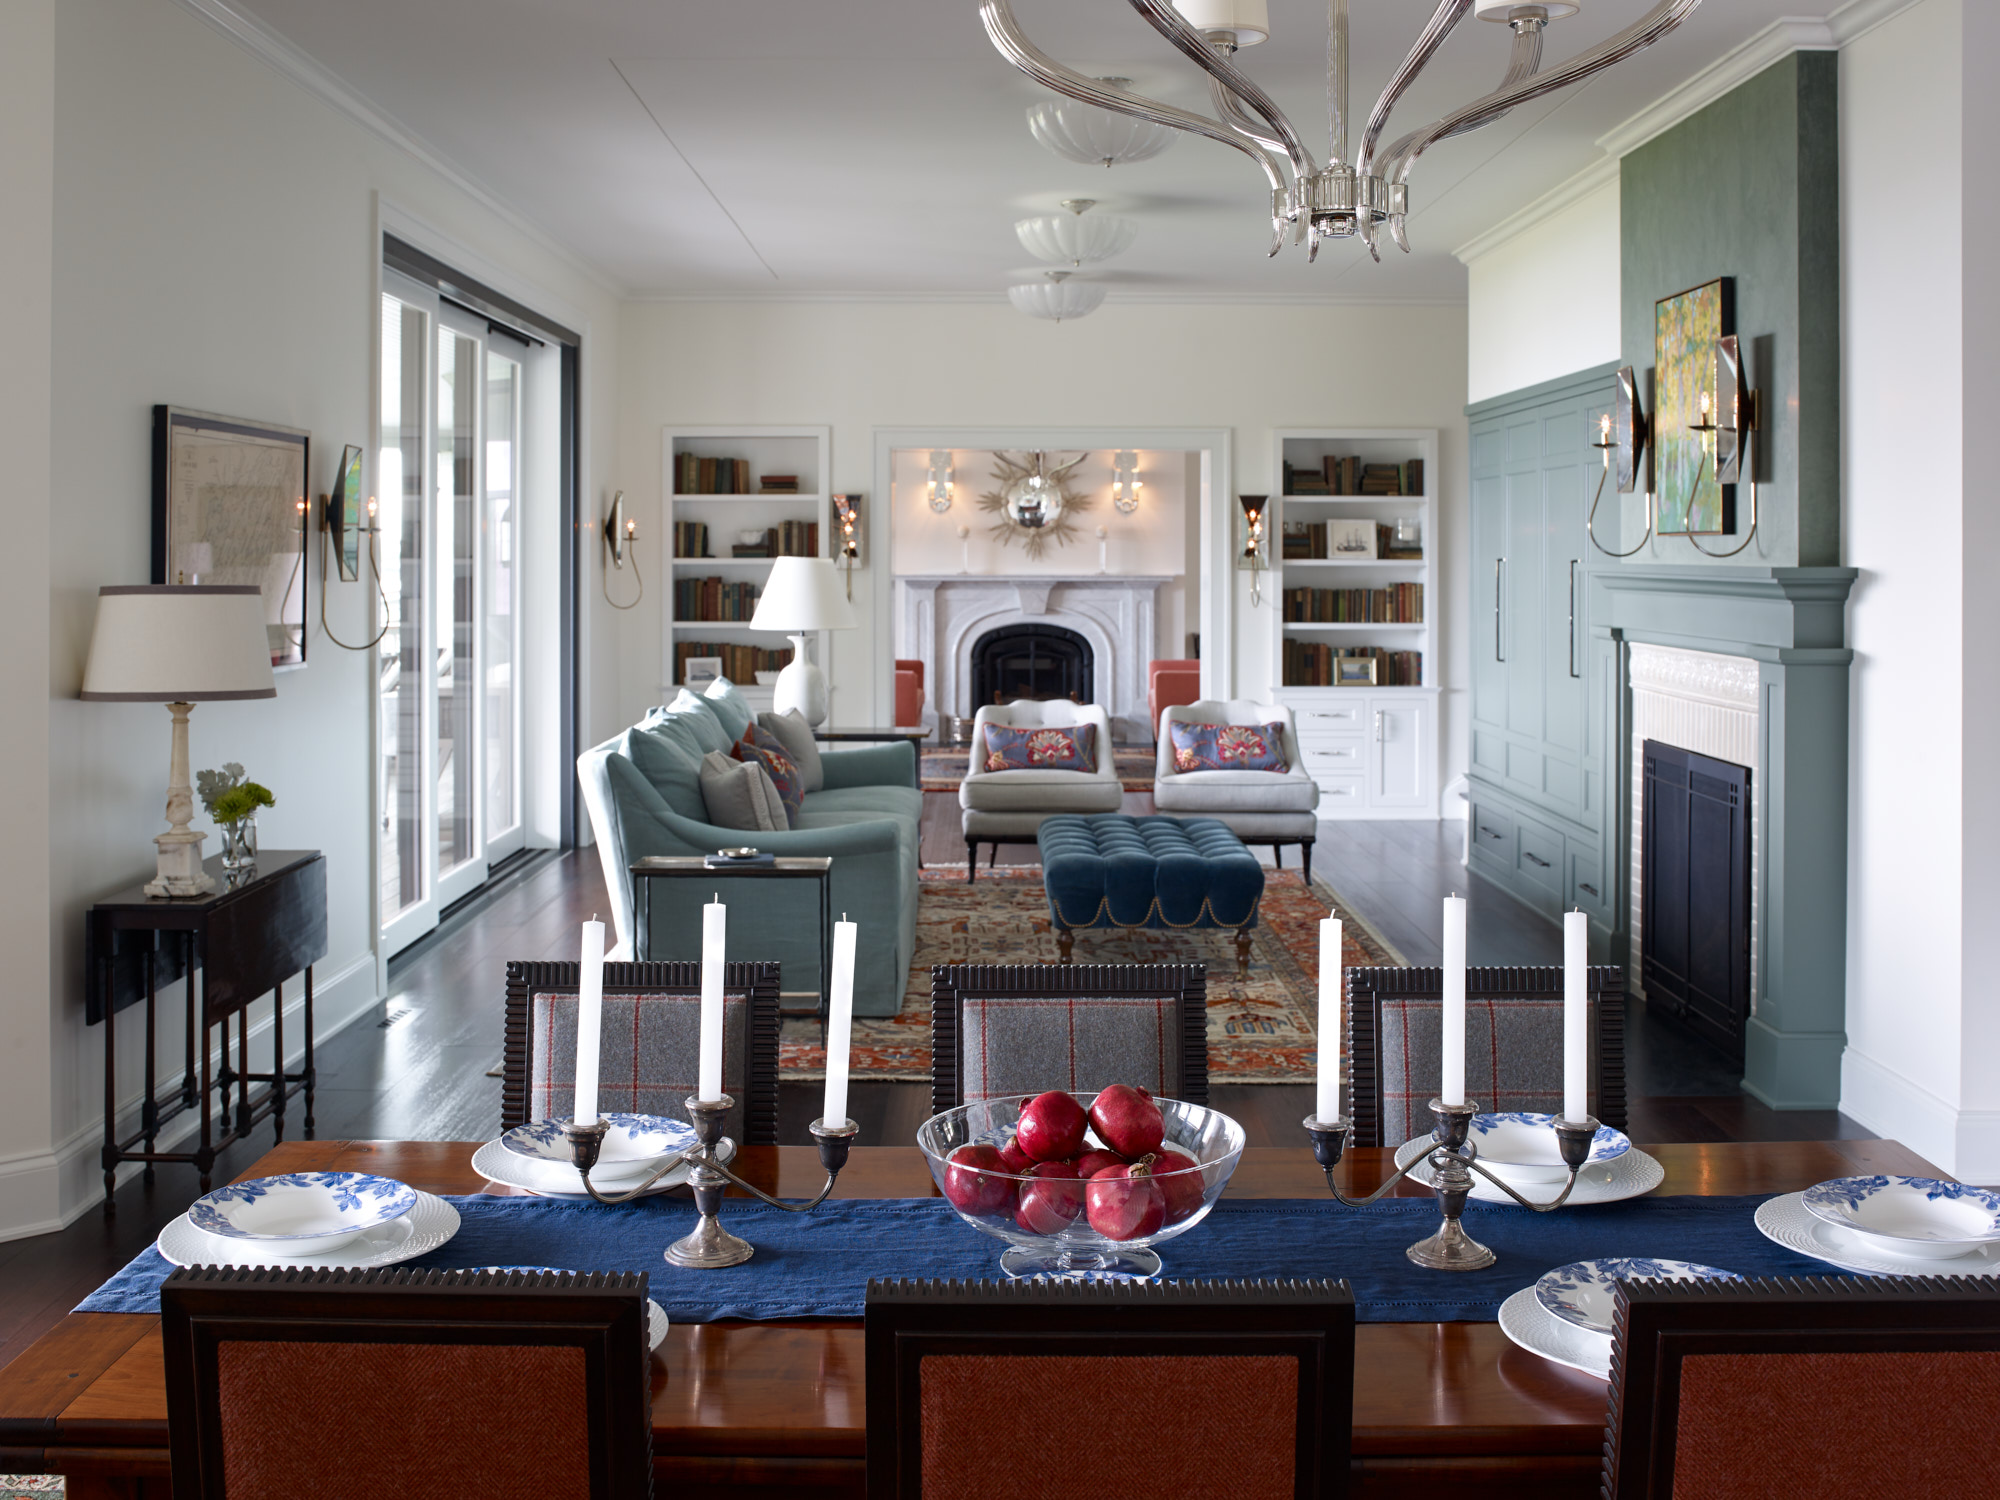 Formal dining area with open view to living spaces.